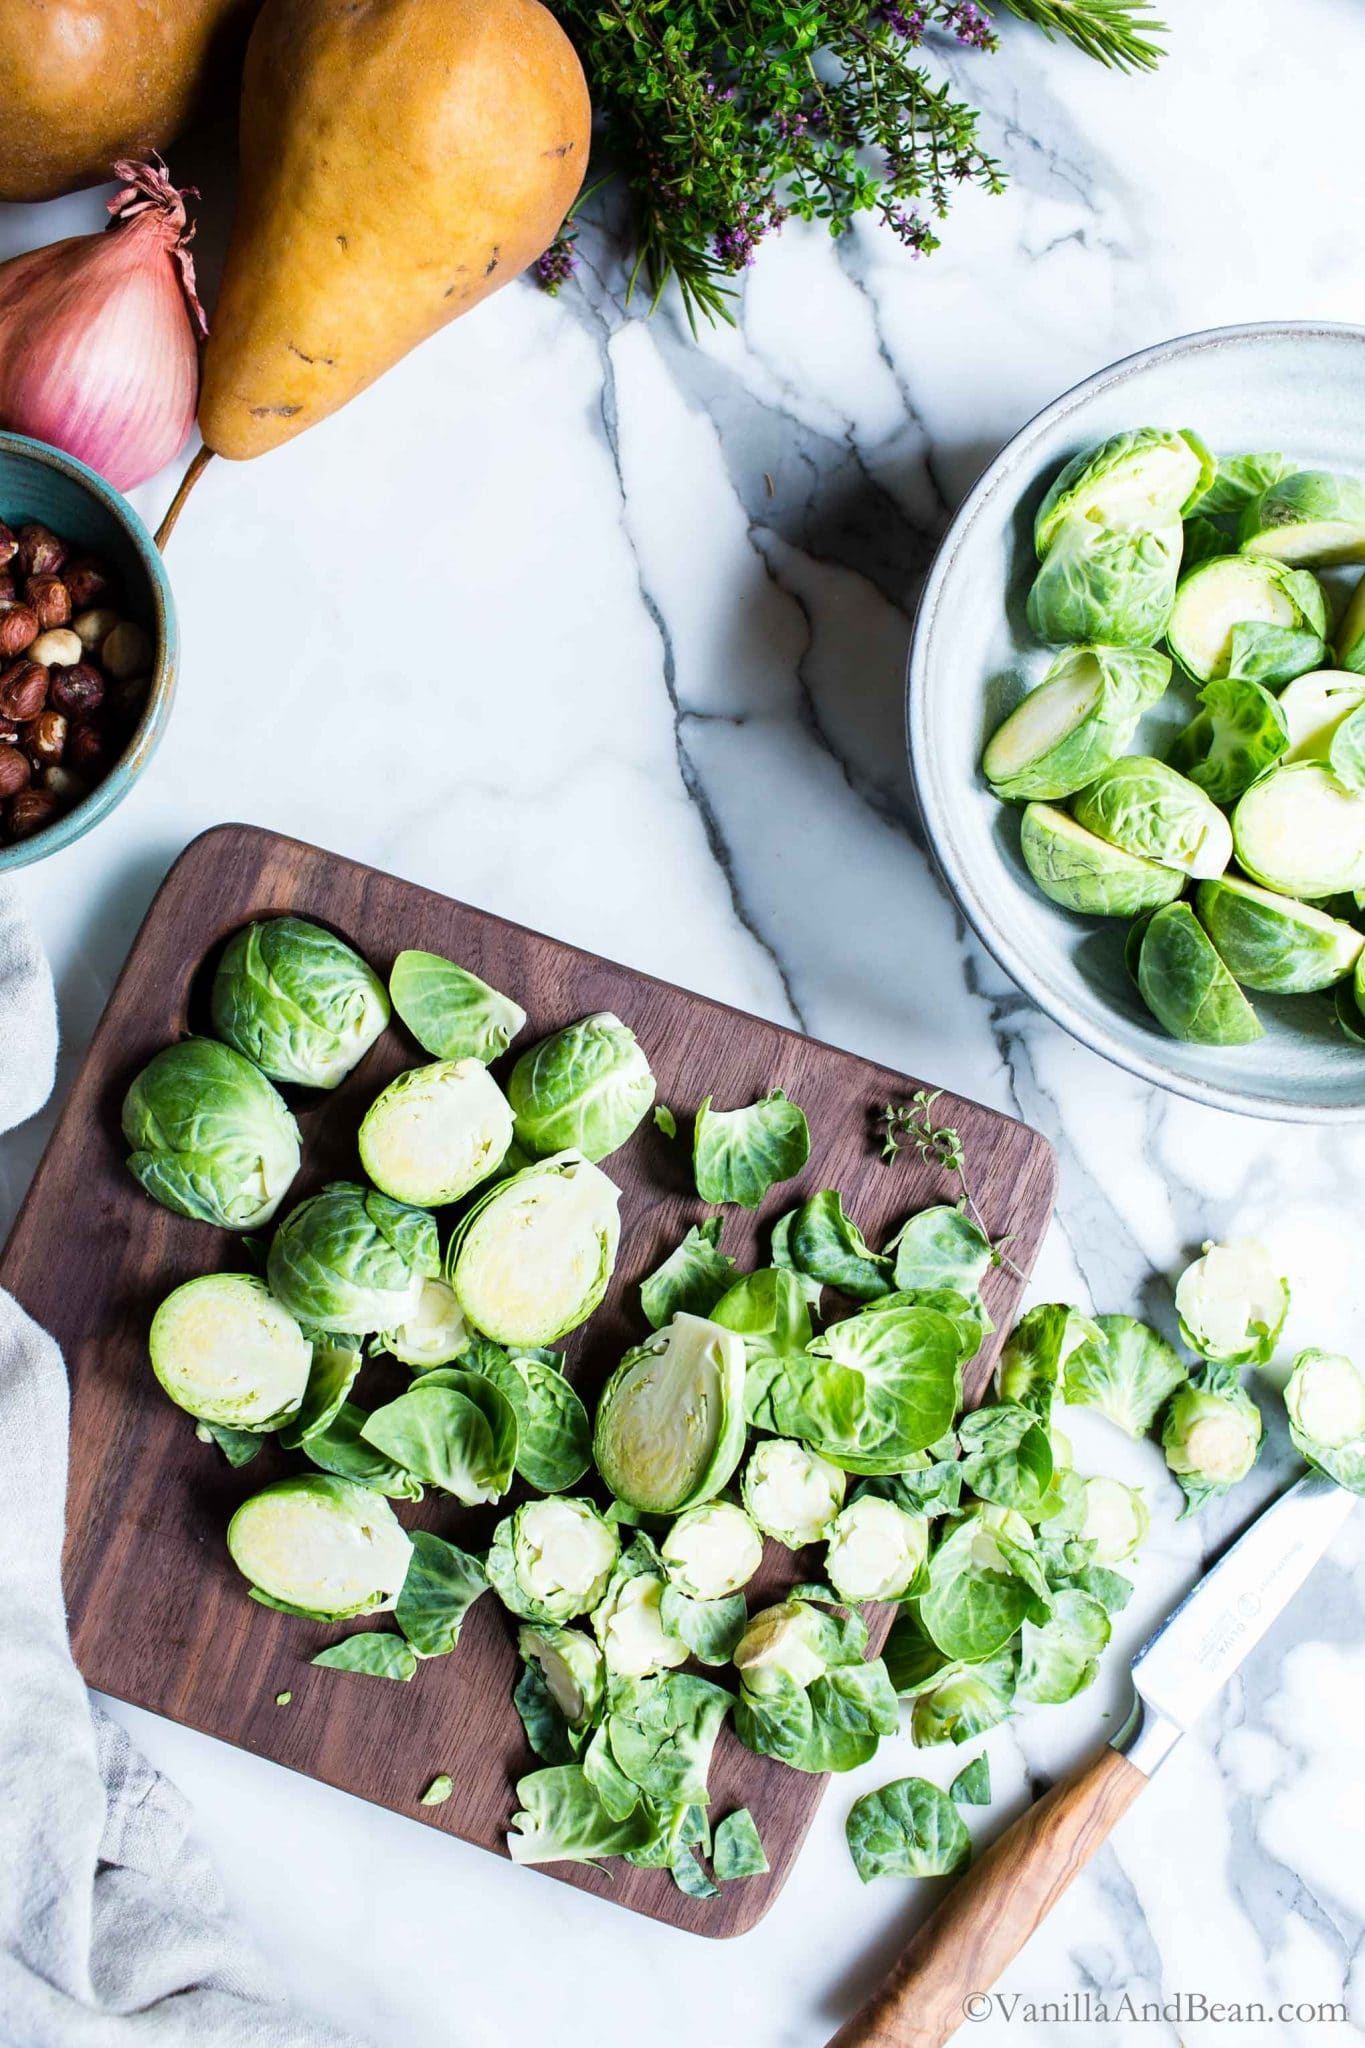 Splitting Brussels sprouts on a cutting board.